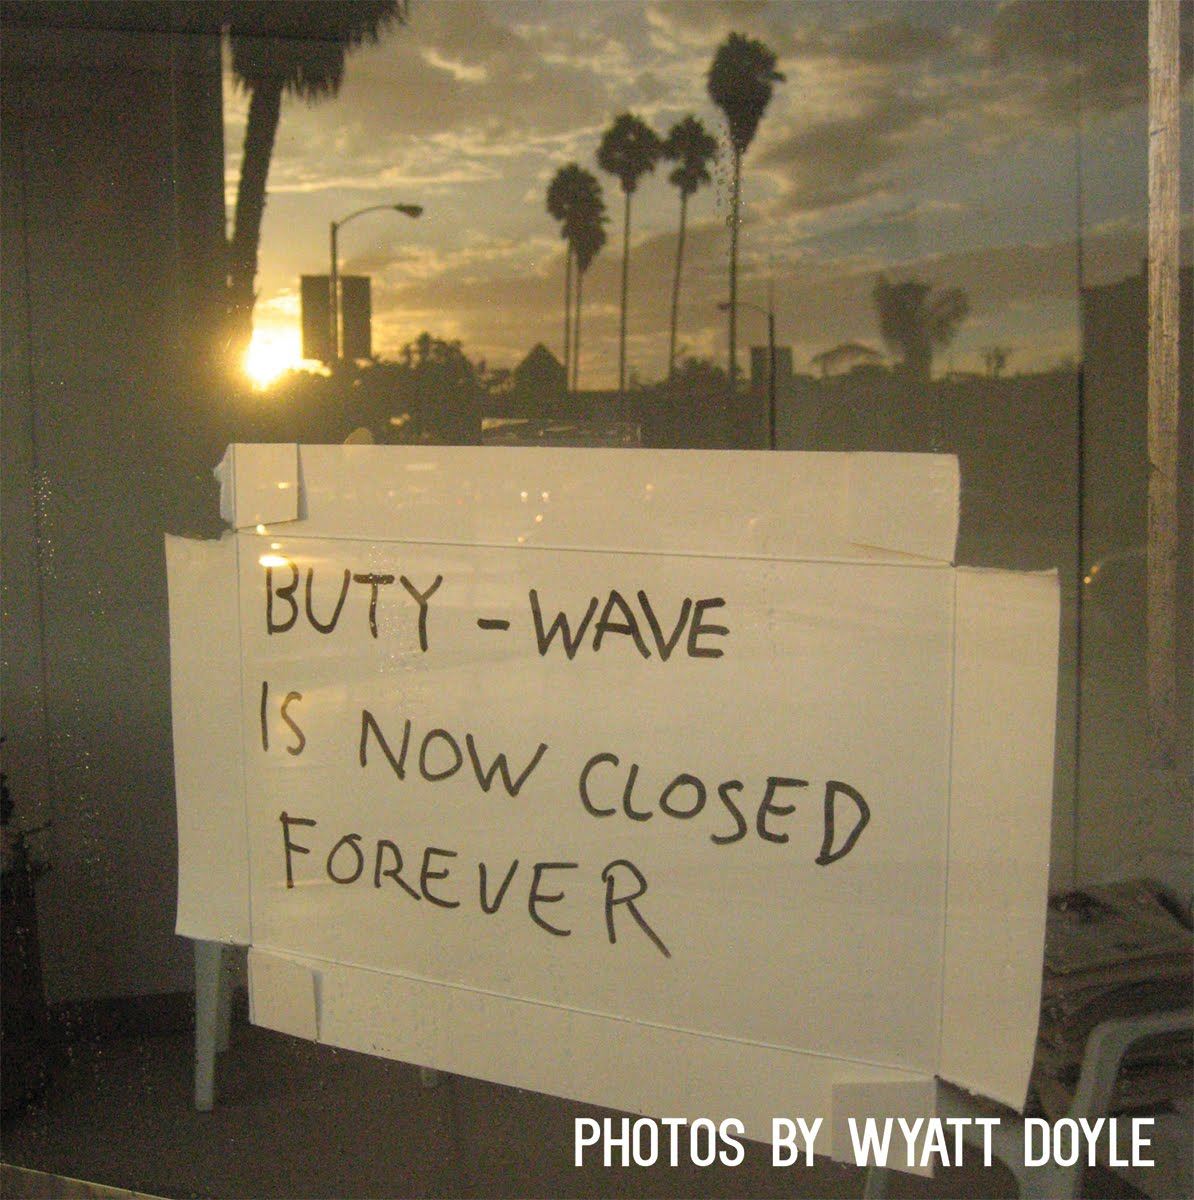 BUTY-WAVE IS NOW CLOSED FOREVER / Wyatt Doyle